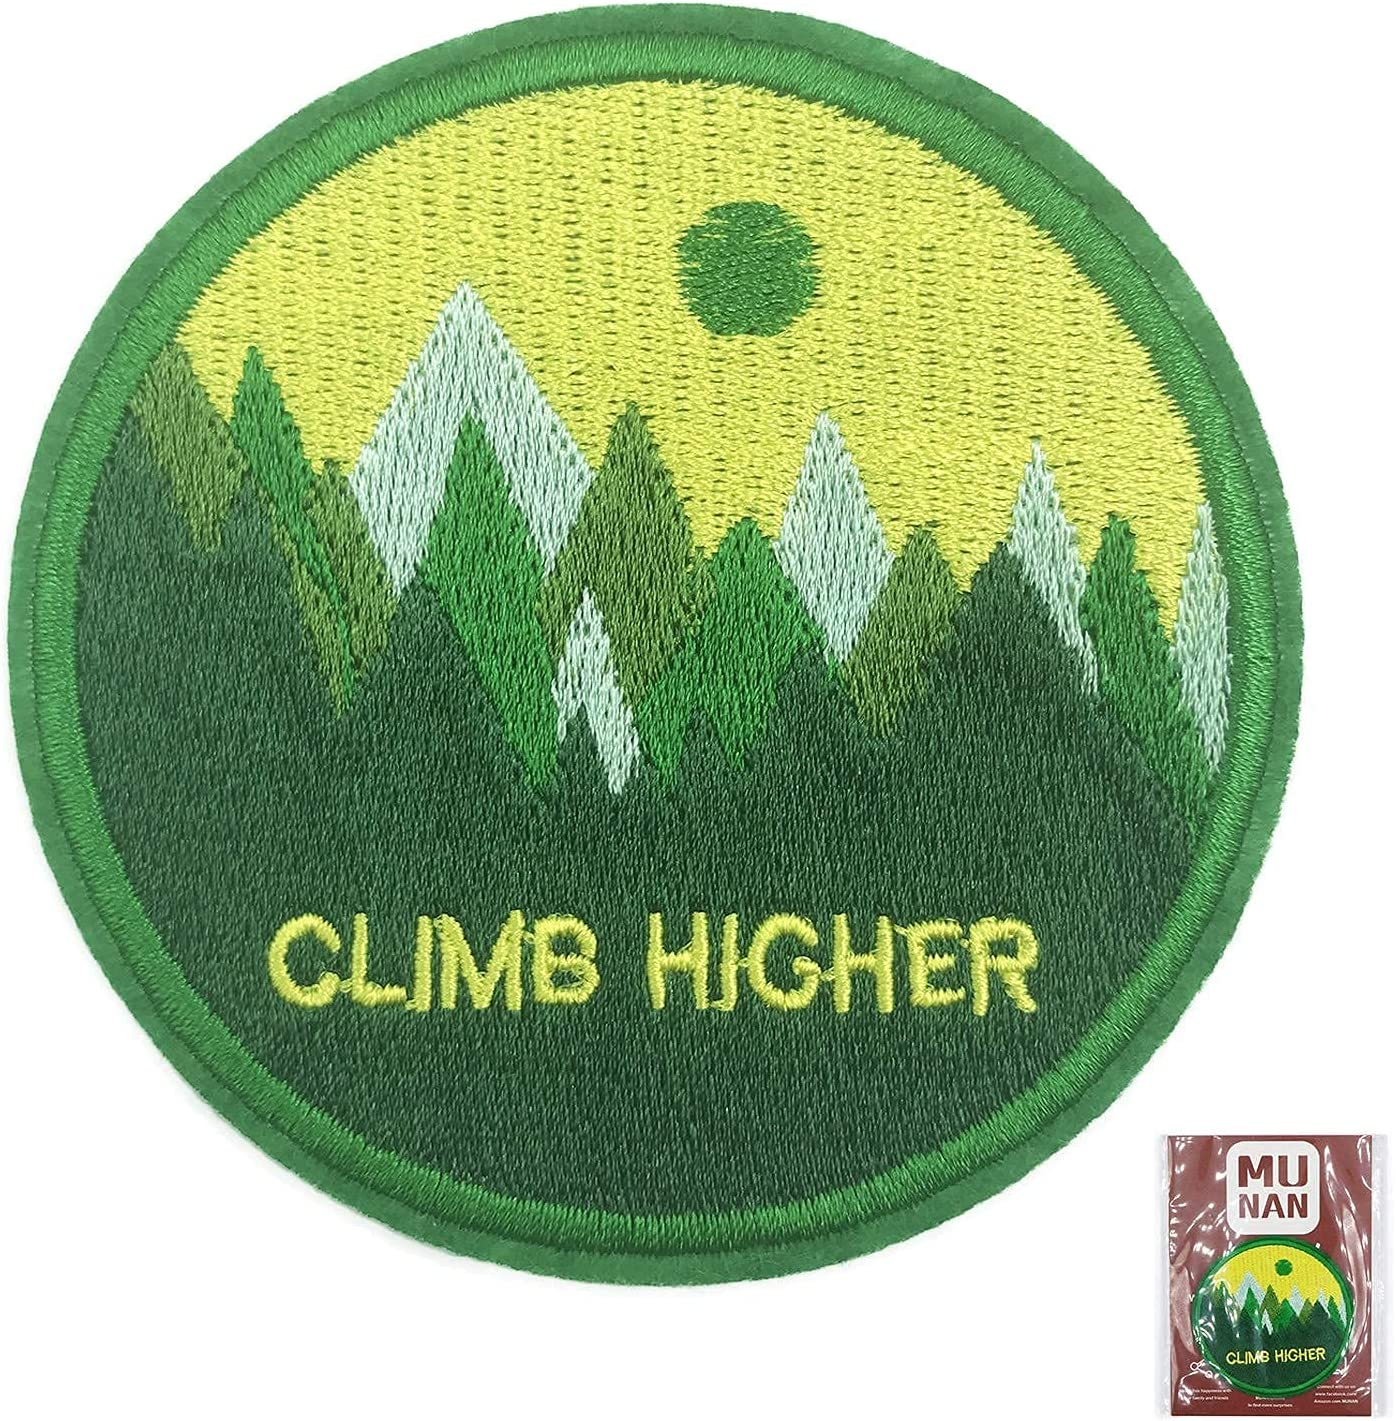 Green Climb Higher Patch Embroidered Iron Badge Sew Applique On Topics Choice on TV